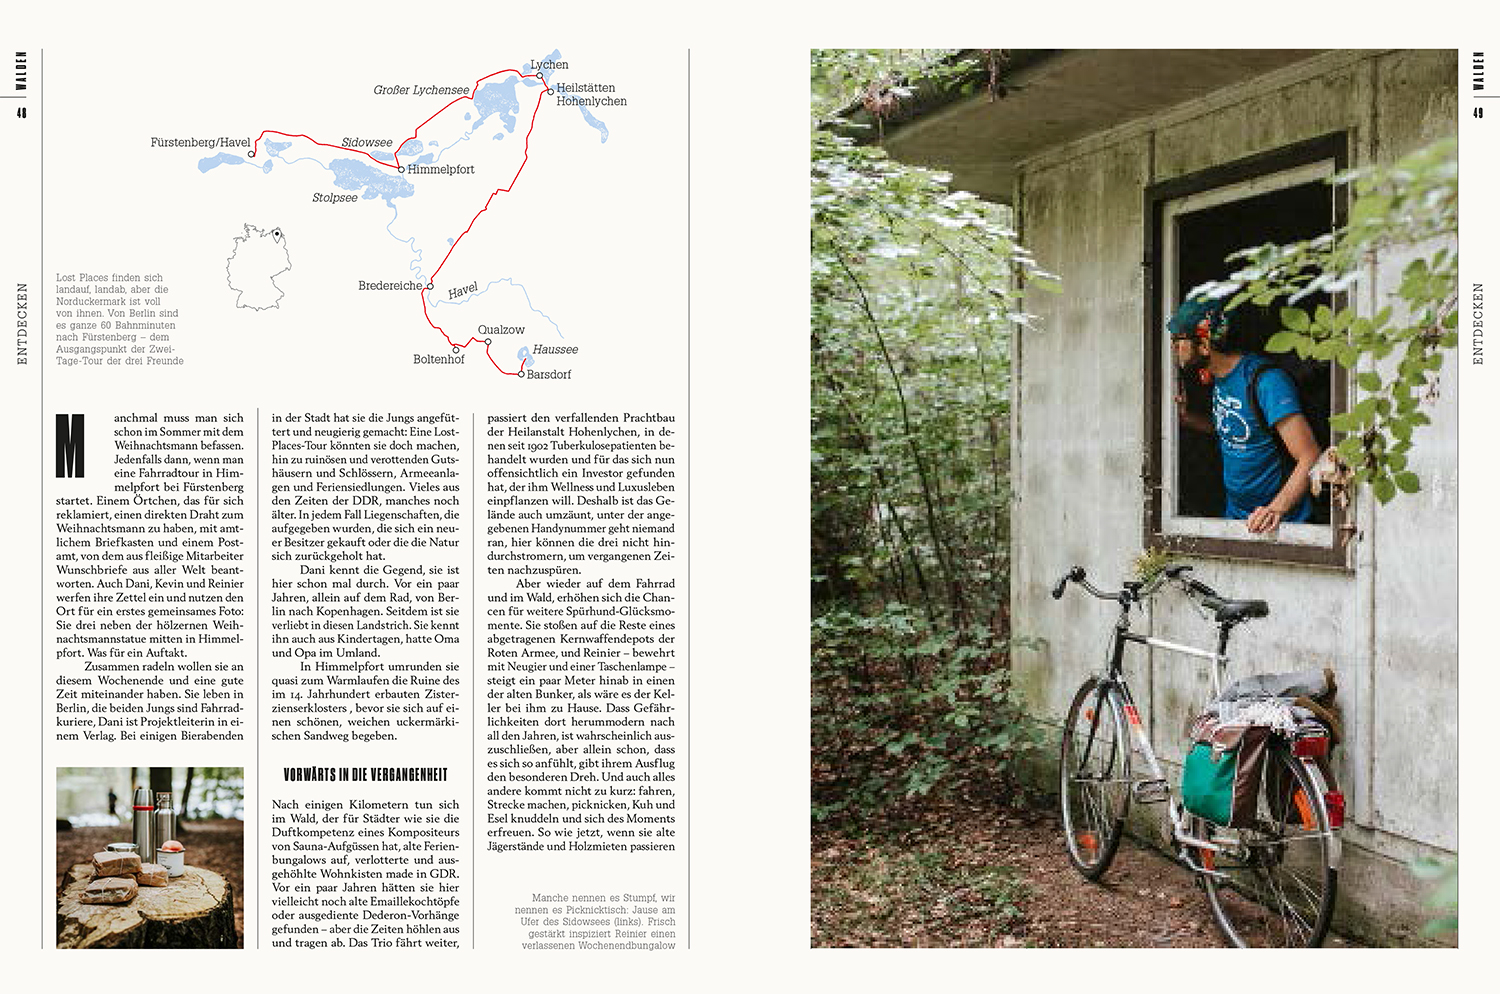 wecyclebrandenburg_lostplaces_walden_magazin3.jpg